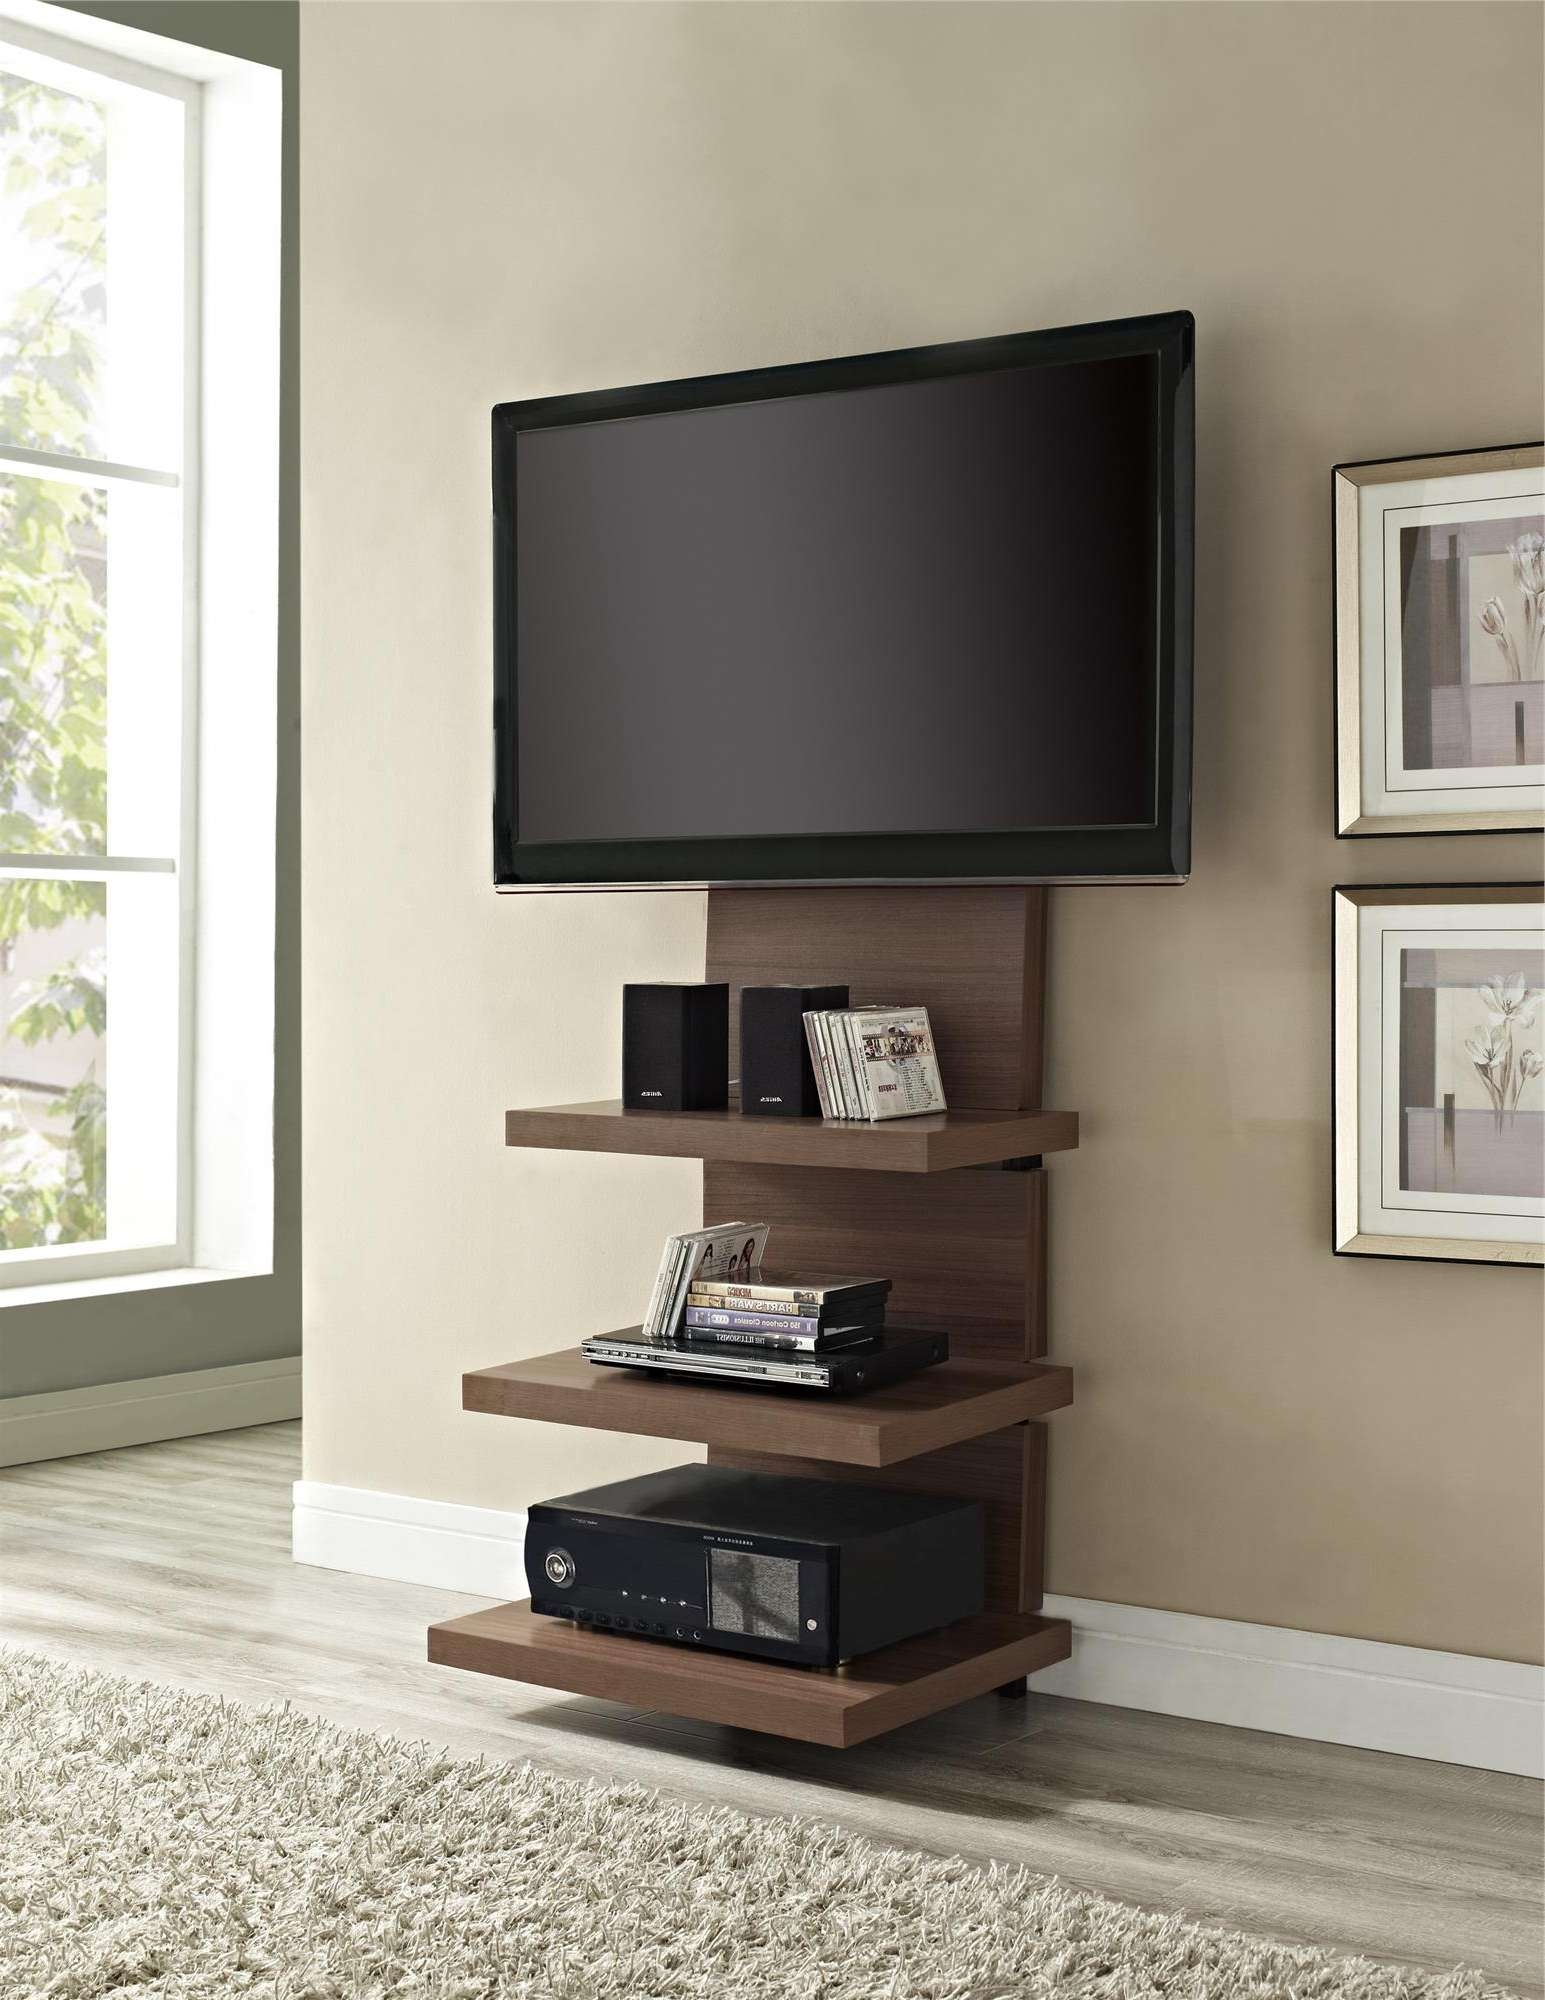 Tall Wood Wall Mounted Tv Stand With Shelves And Mount For Flat Within Unique Tv Stands For Flat Screens (View 4 of 20)